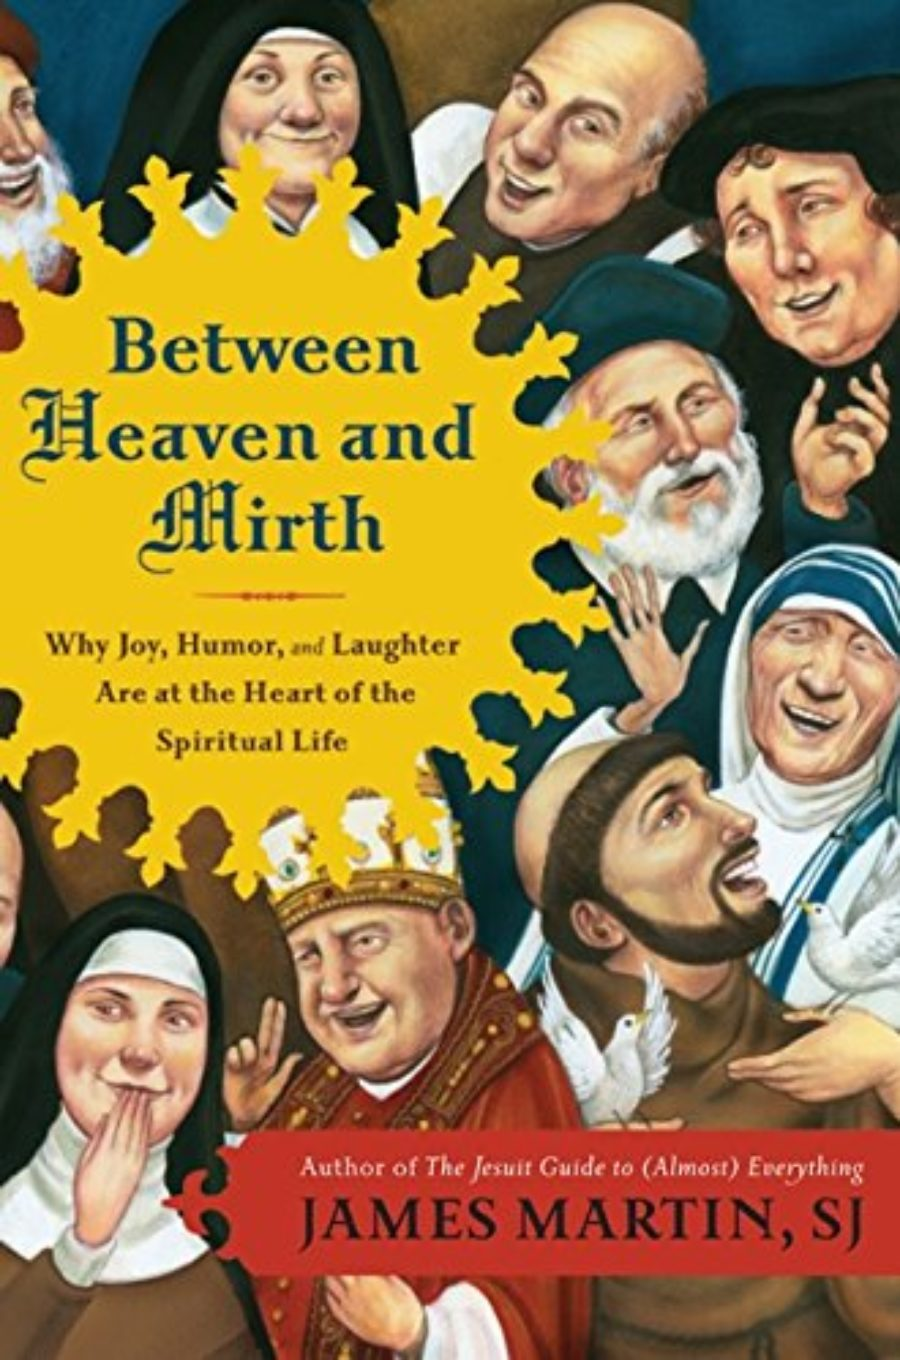 Cover of Between Heaven and Mirth: Why Joy, Humor, and Laughter Are at the Heart of the Spiritual Life